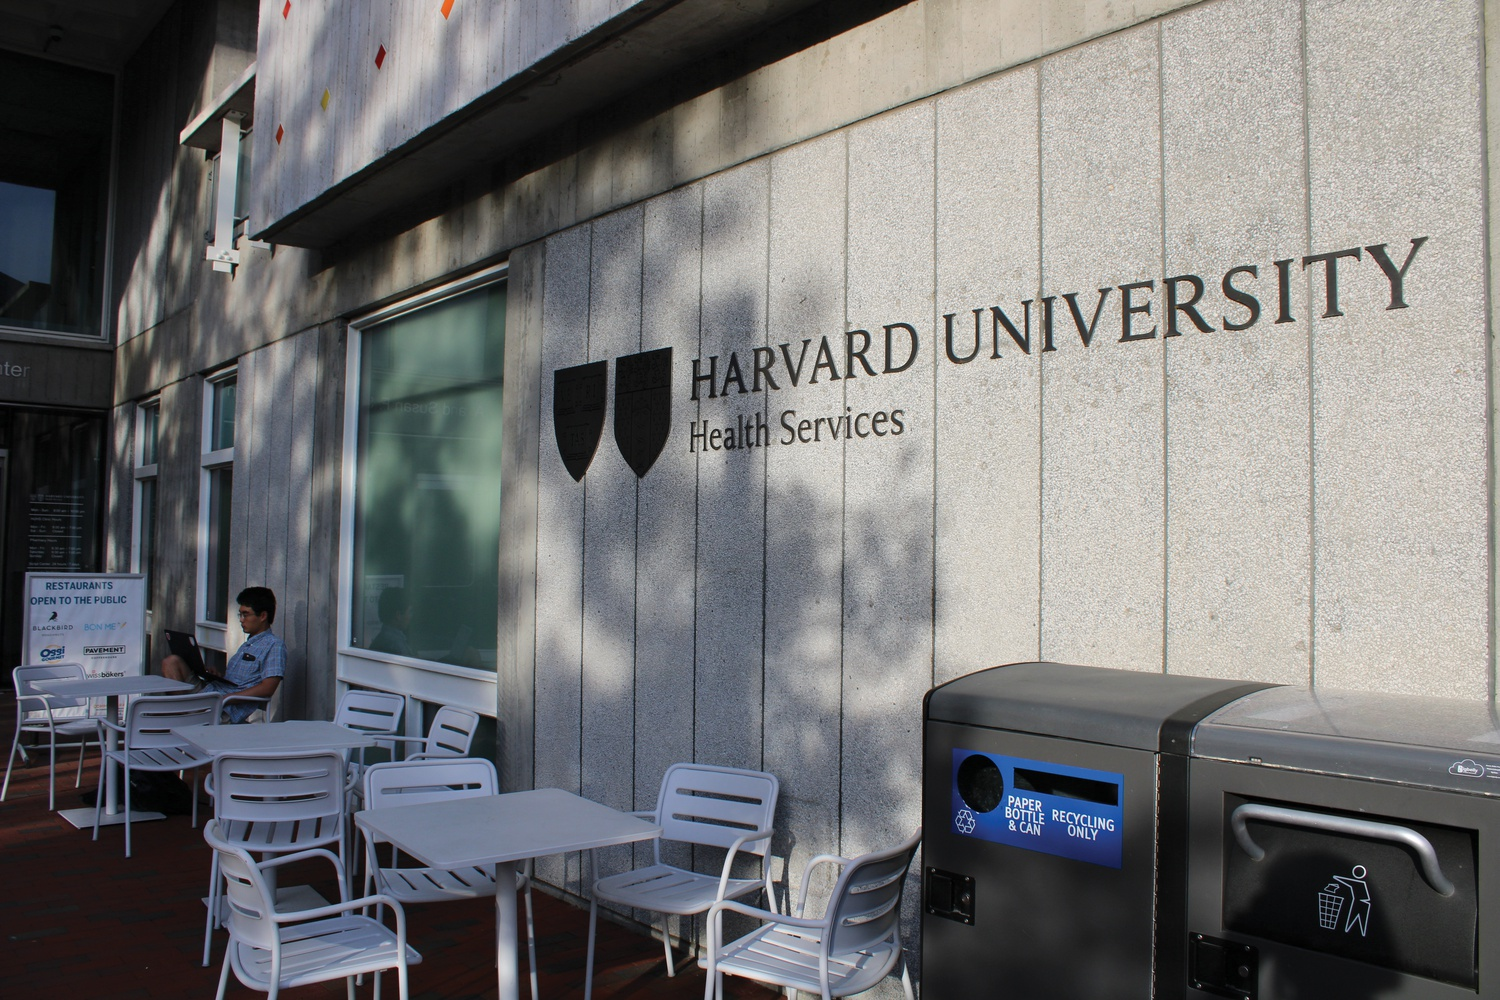 Harvard University Health Services, which is based in the Smith Campus Center.